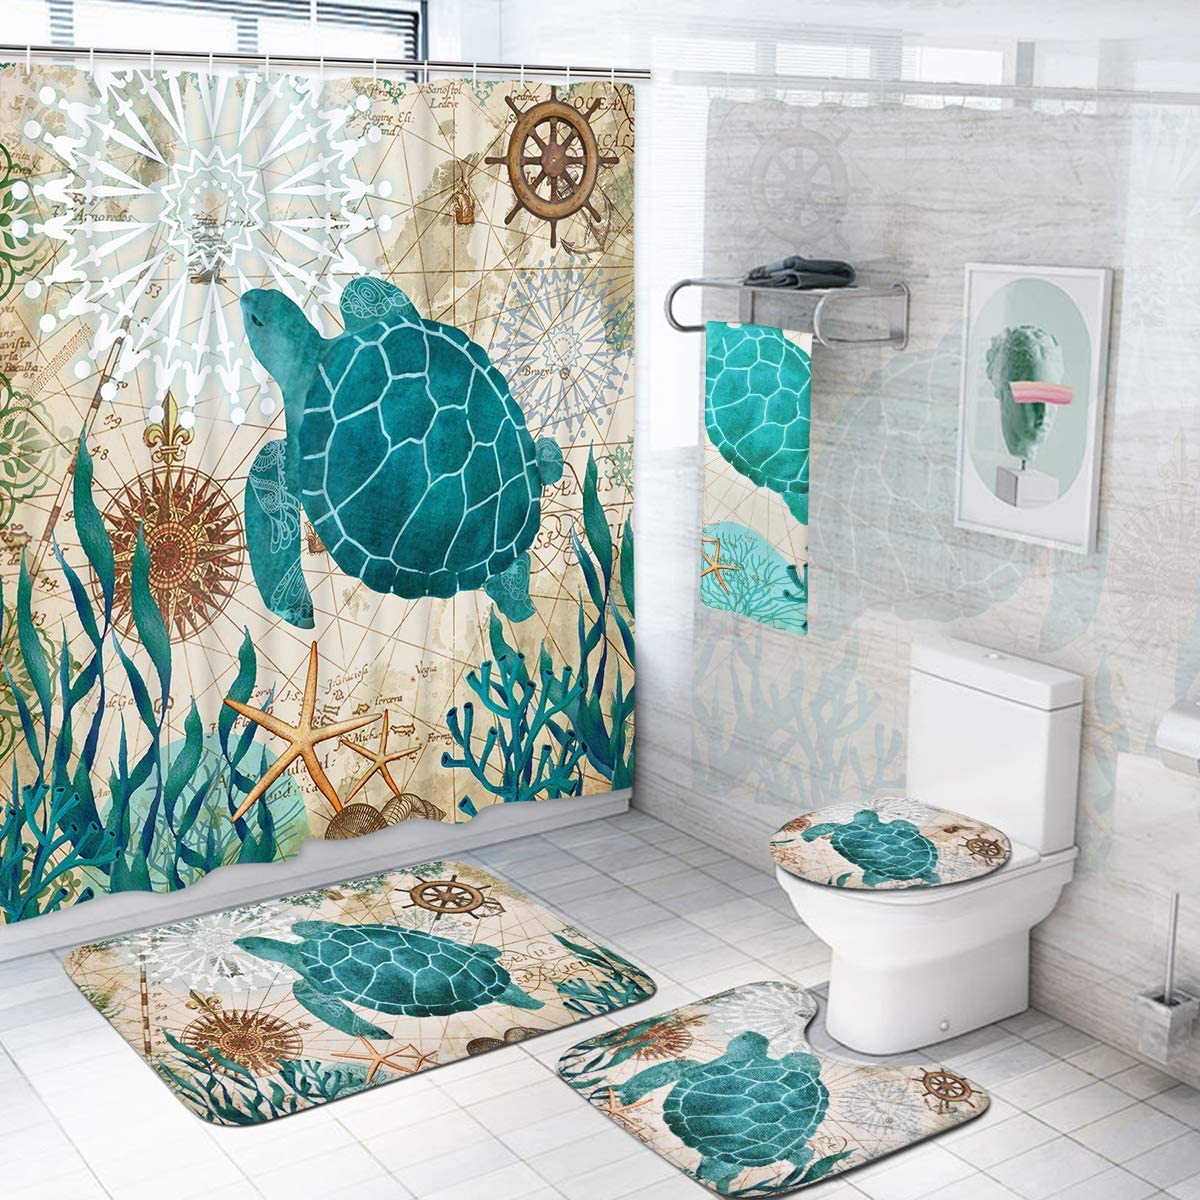 5 Pcs Sea Turtle Shower Curtain Sets with Rugs and Towels, Non-Slip Rug, Toilet Lid Cover and Bath Mat, Sea Turtle Bathroom Set Shower Curtains with 12 Hooks, Turtle Shower Curtains for Bathroom